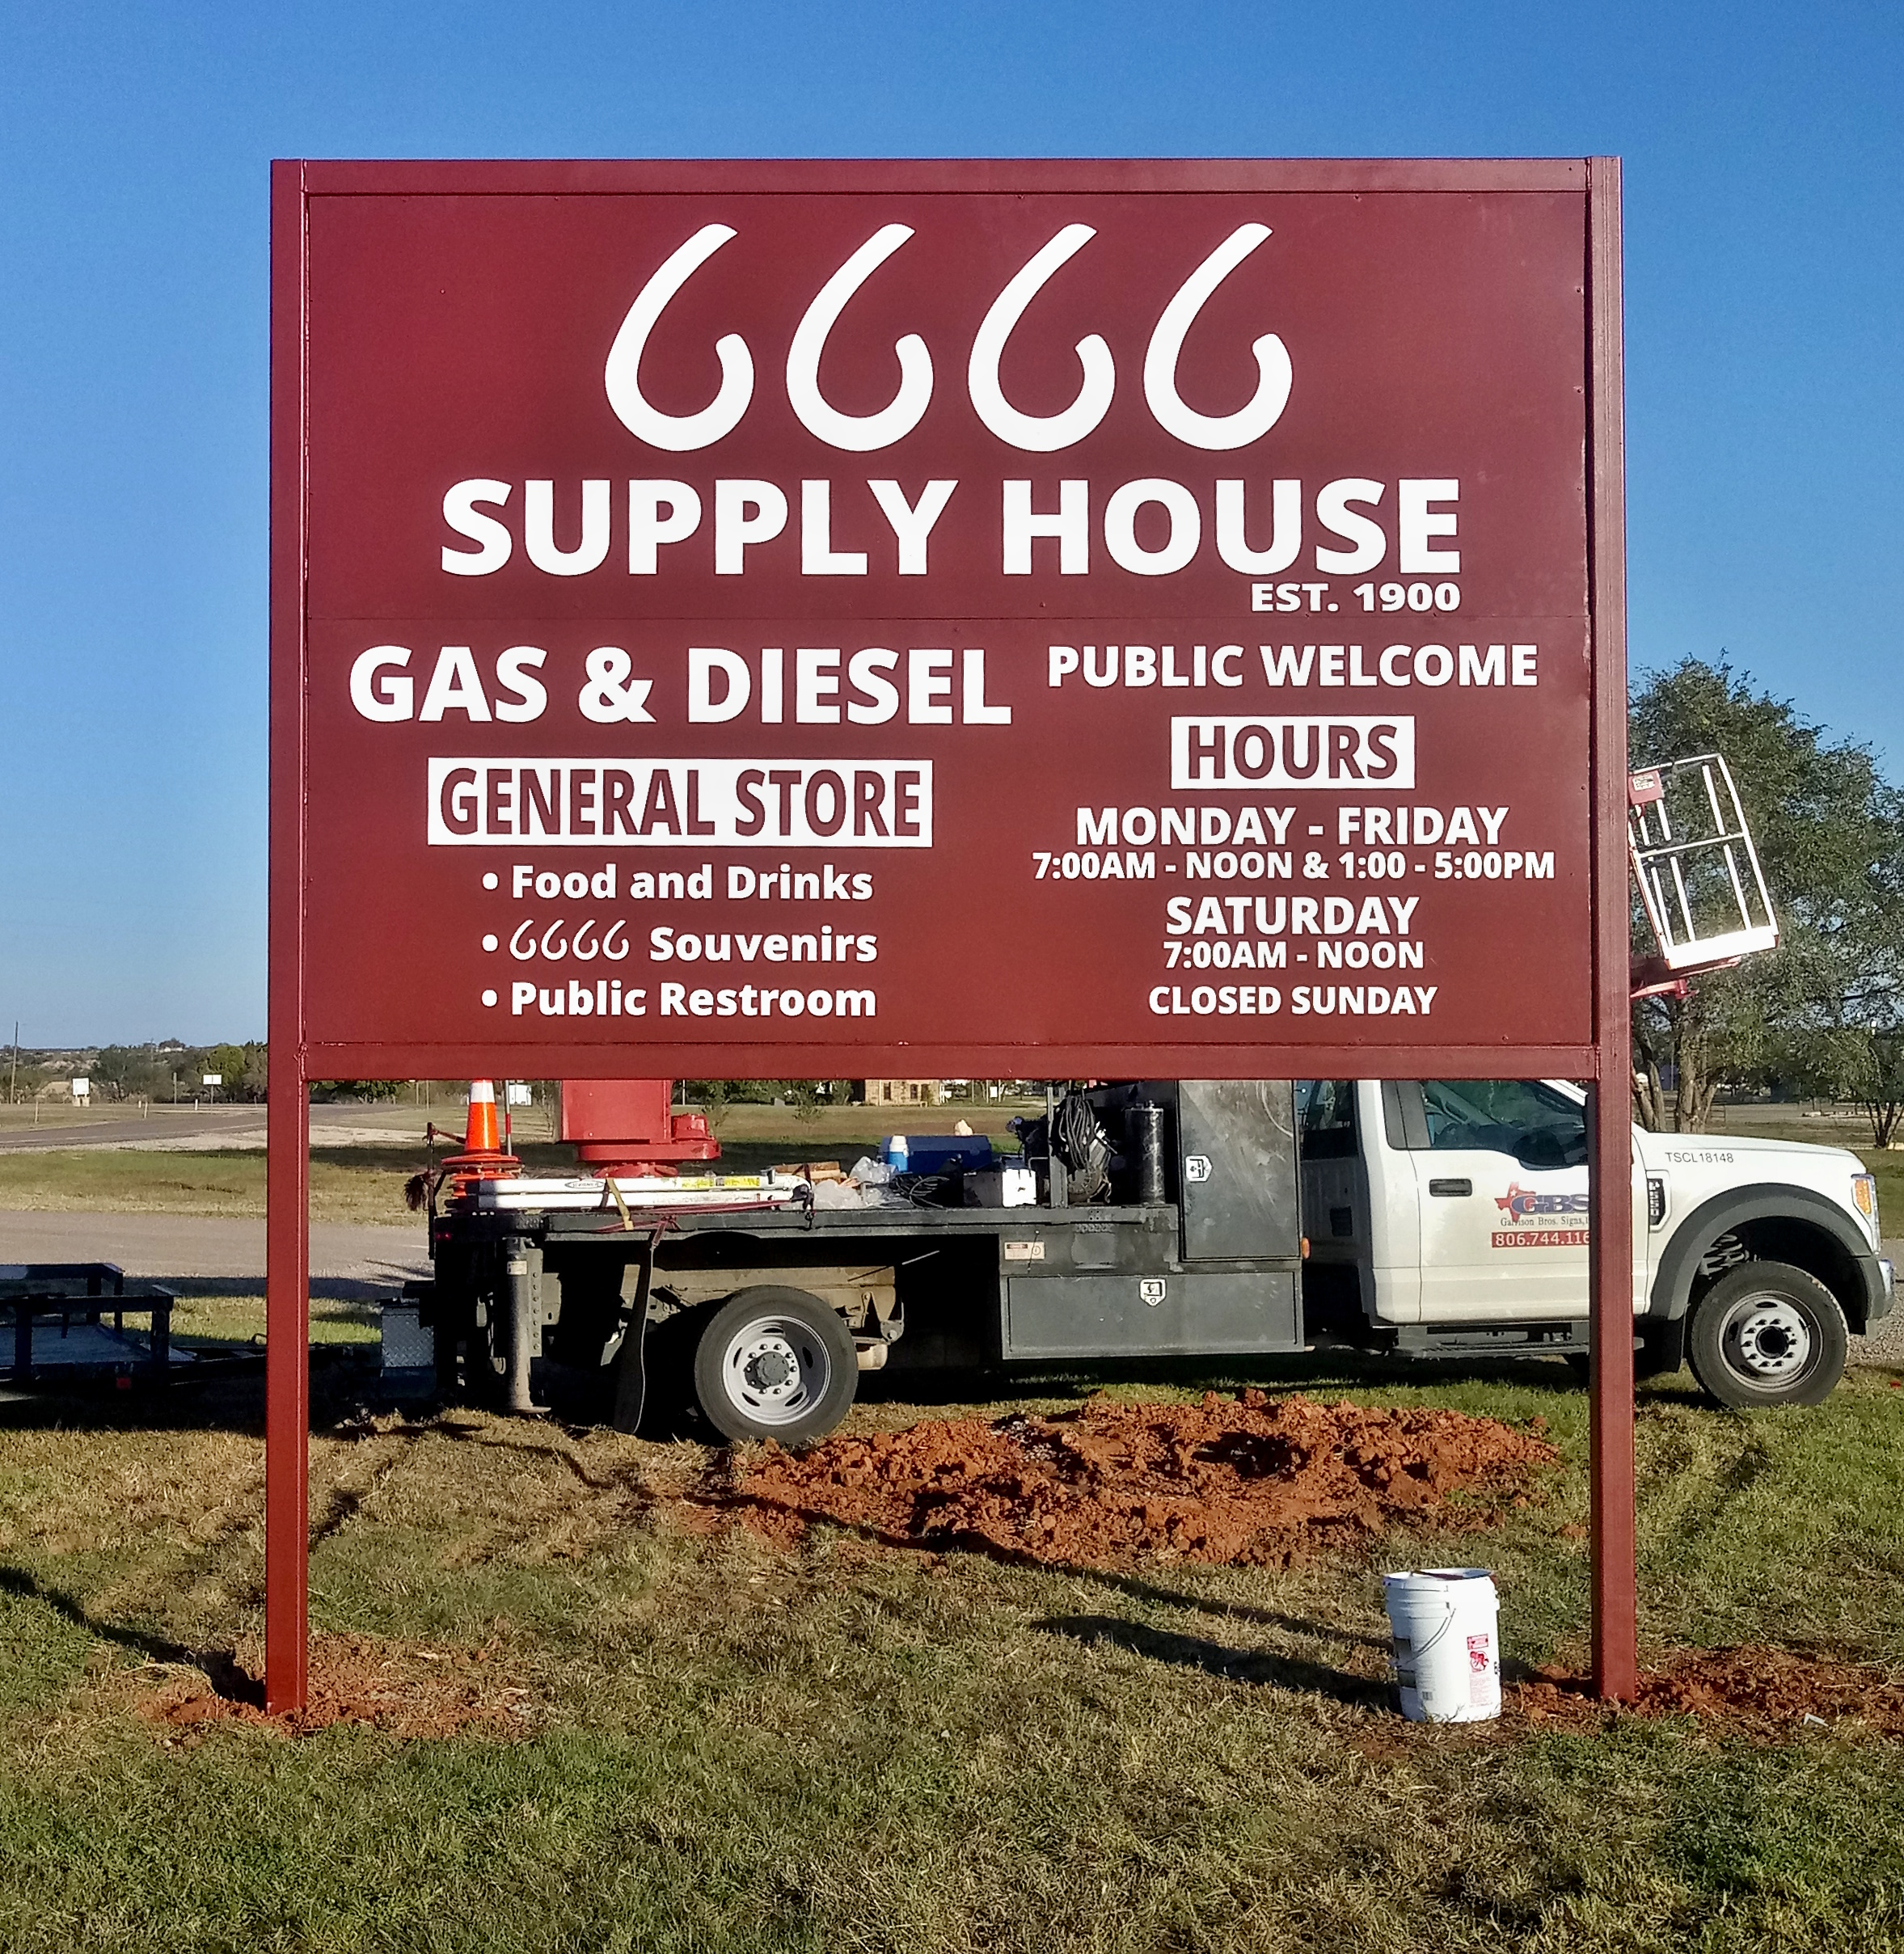 6666 Supply House - Guthrie, TX